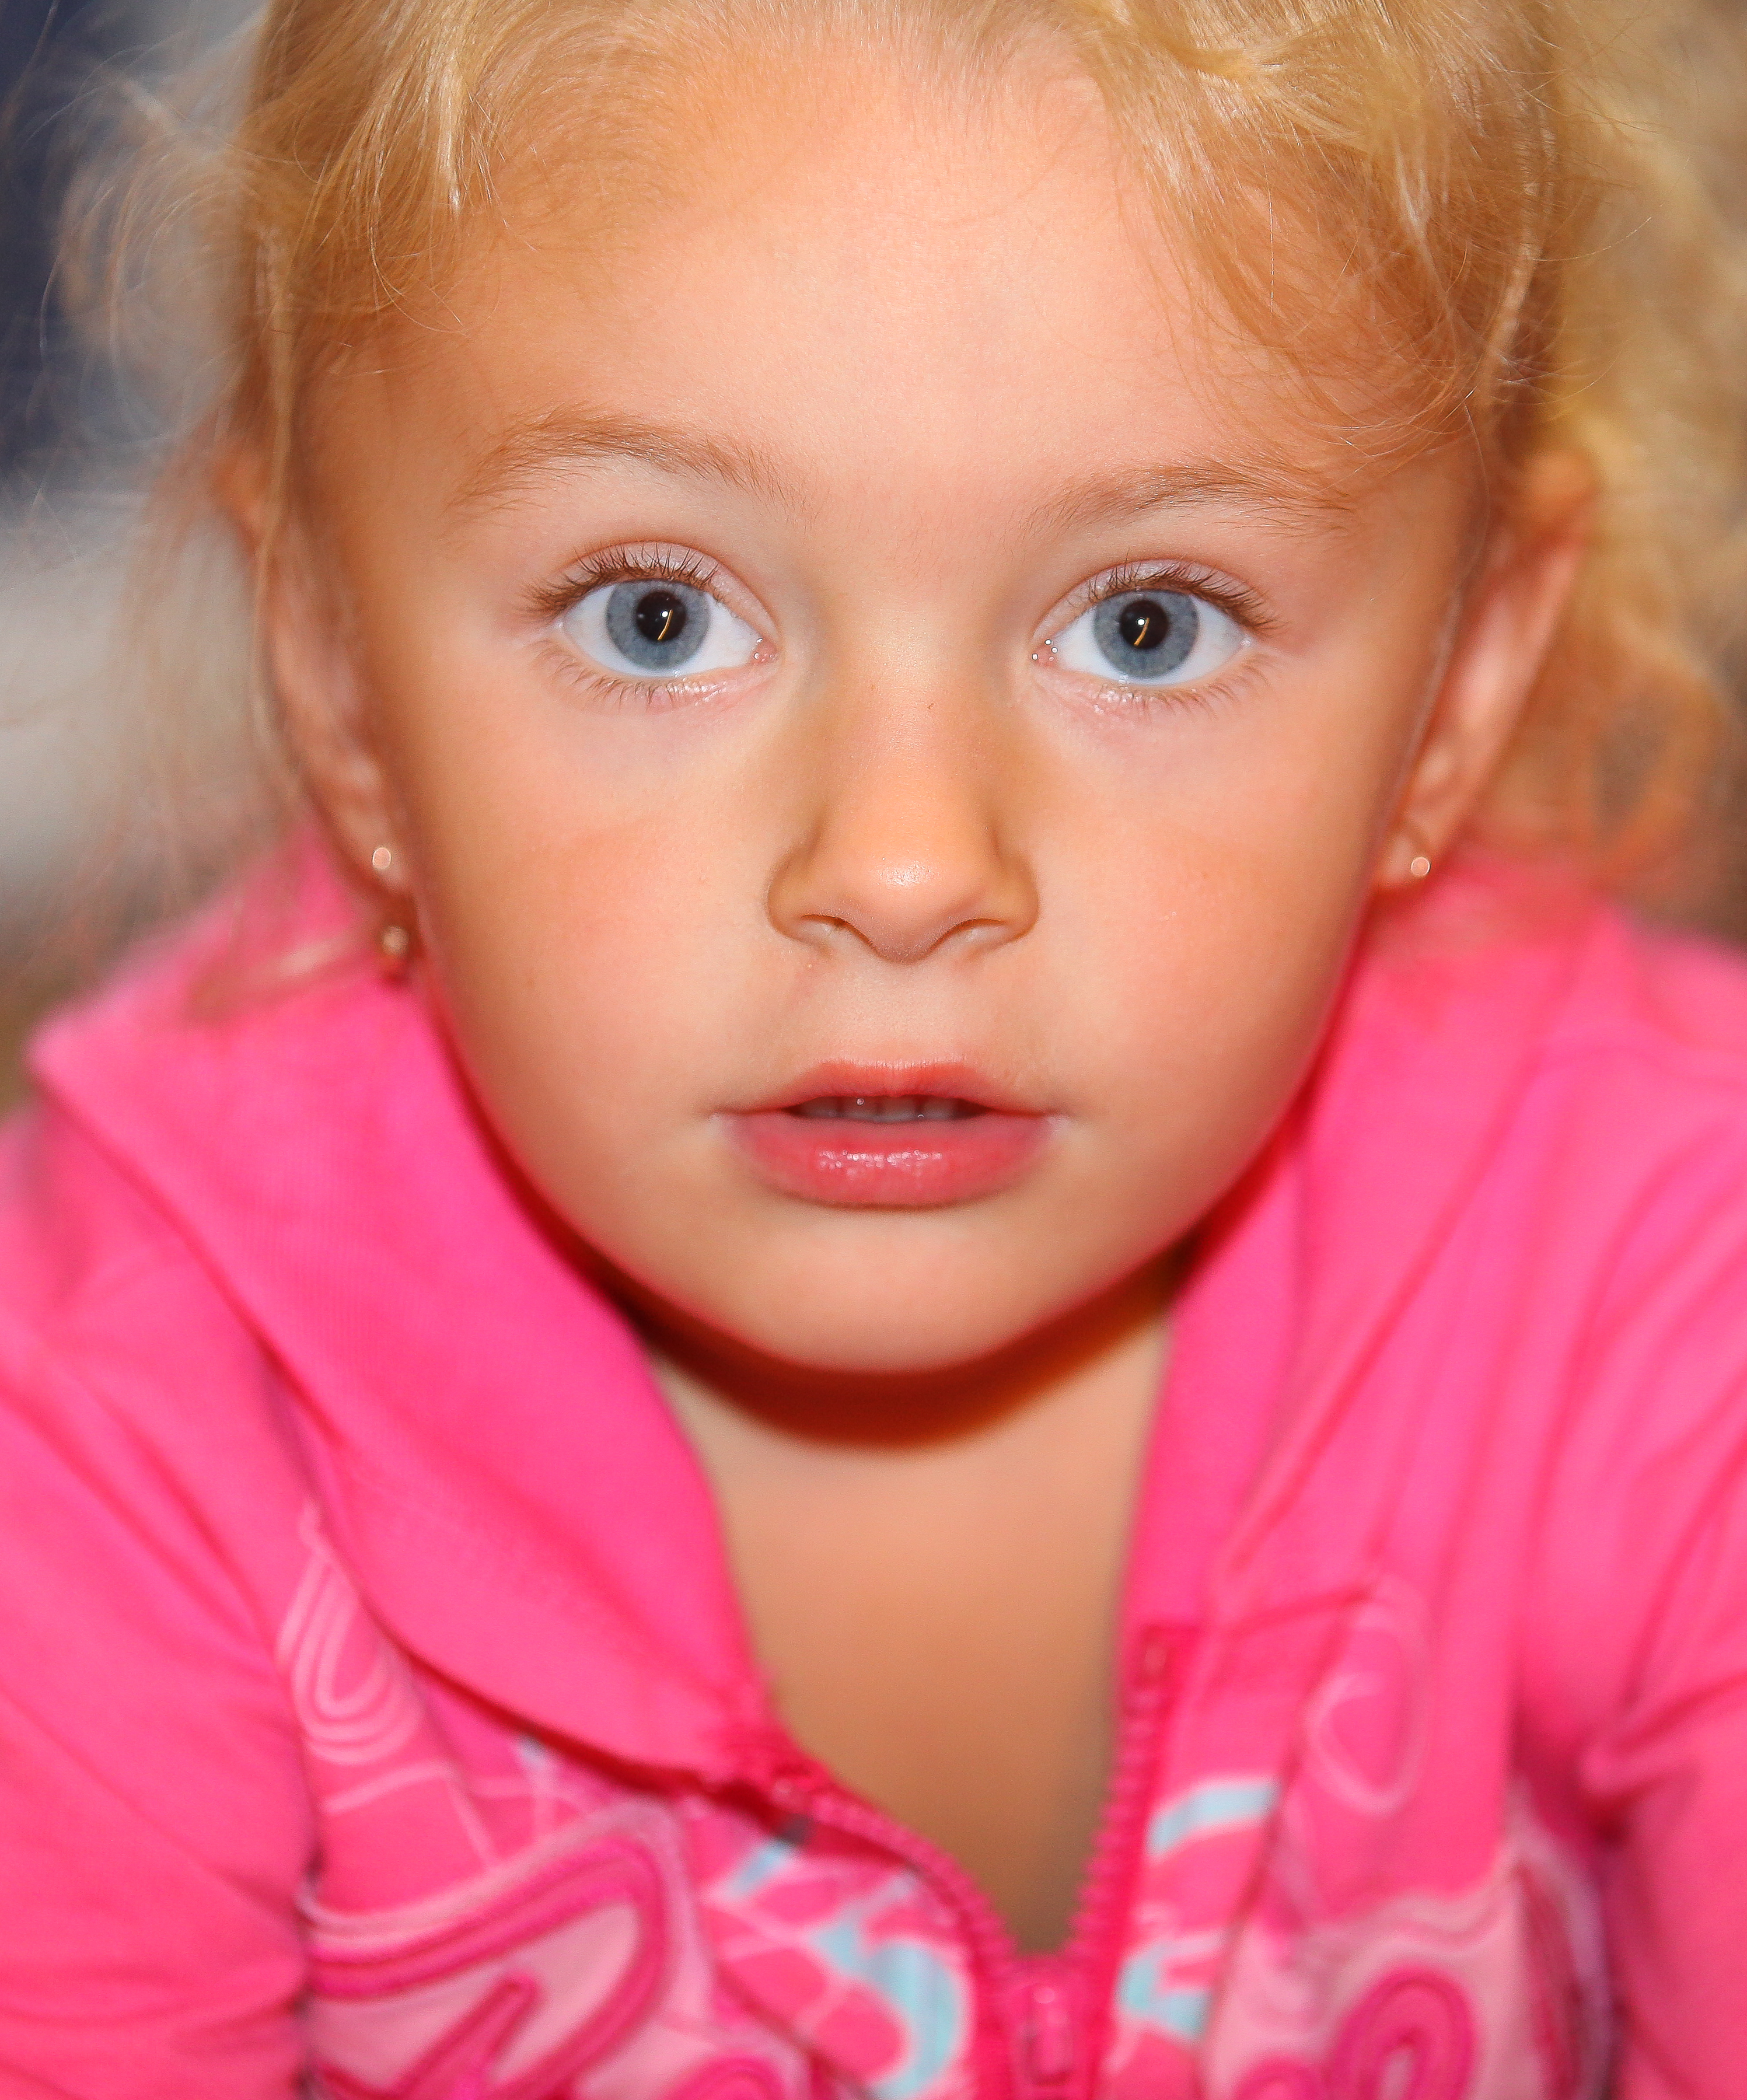 a sweet blond child girl photographed in September 2013, picture 4/4